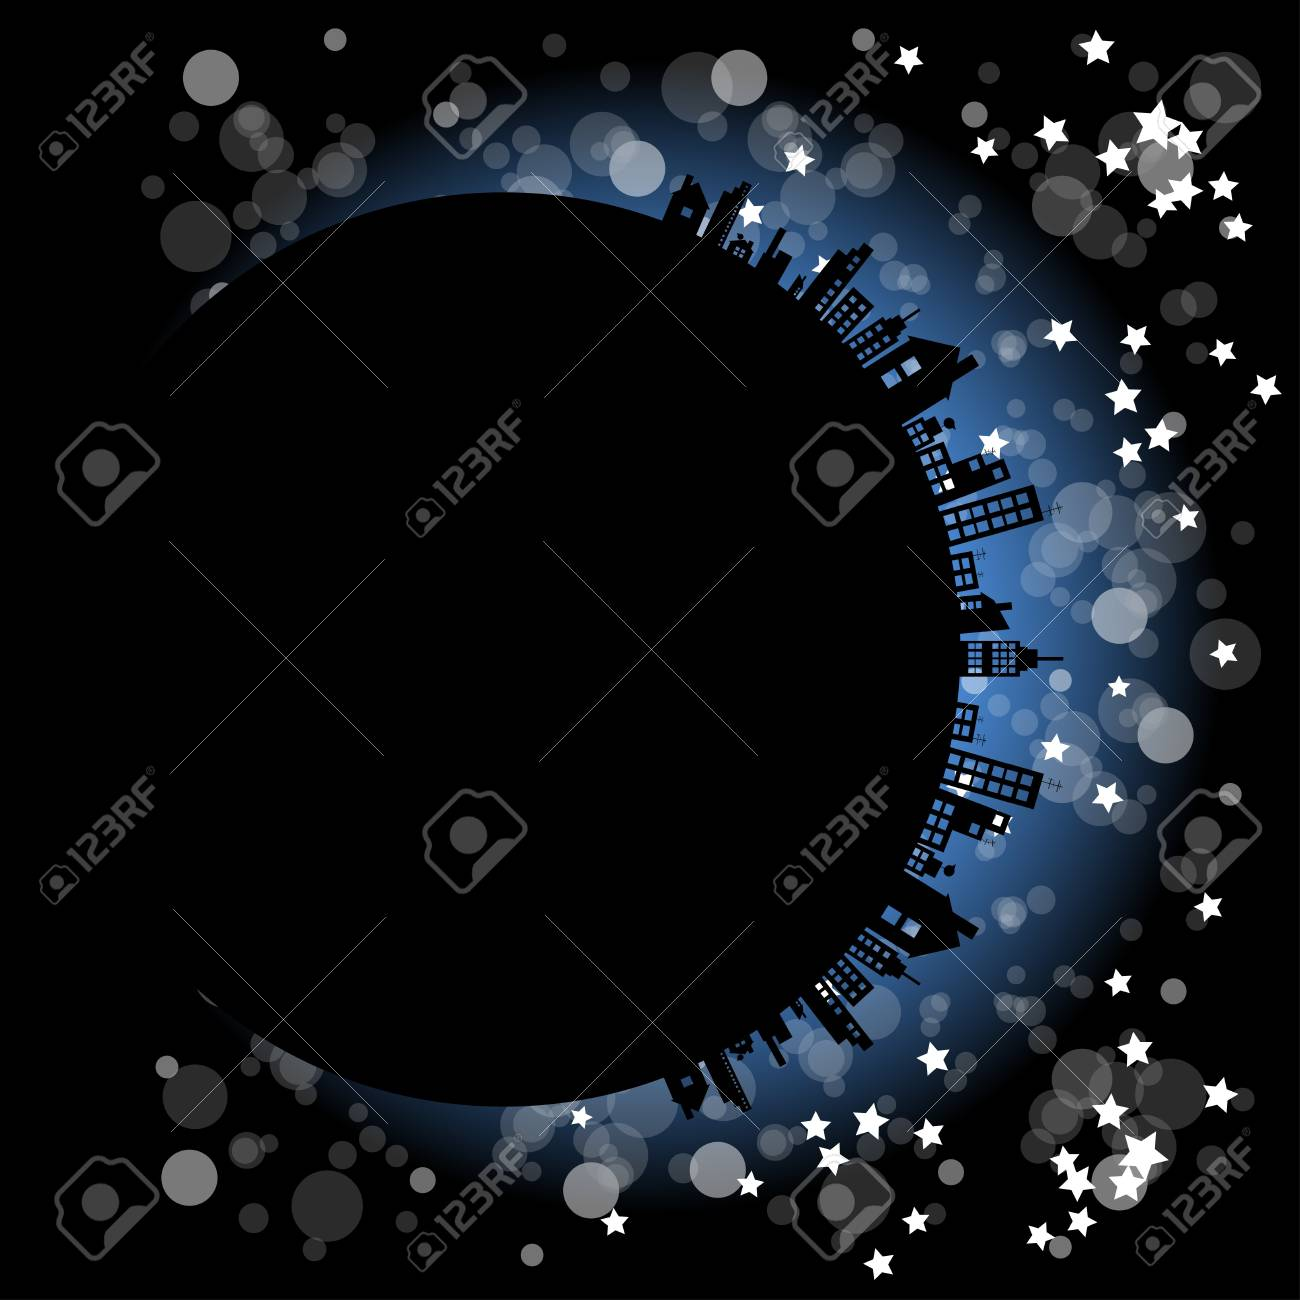 City in the night abstract Stock Vector - 13214312